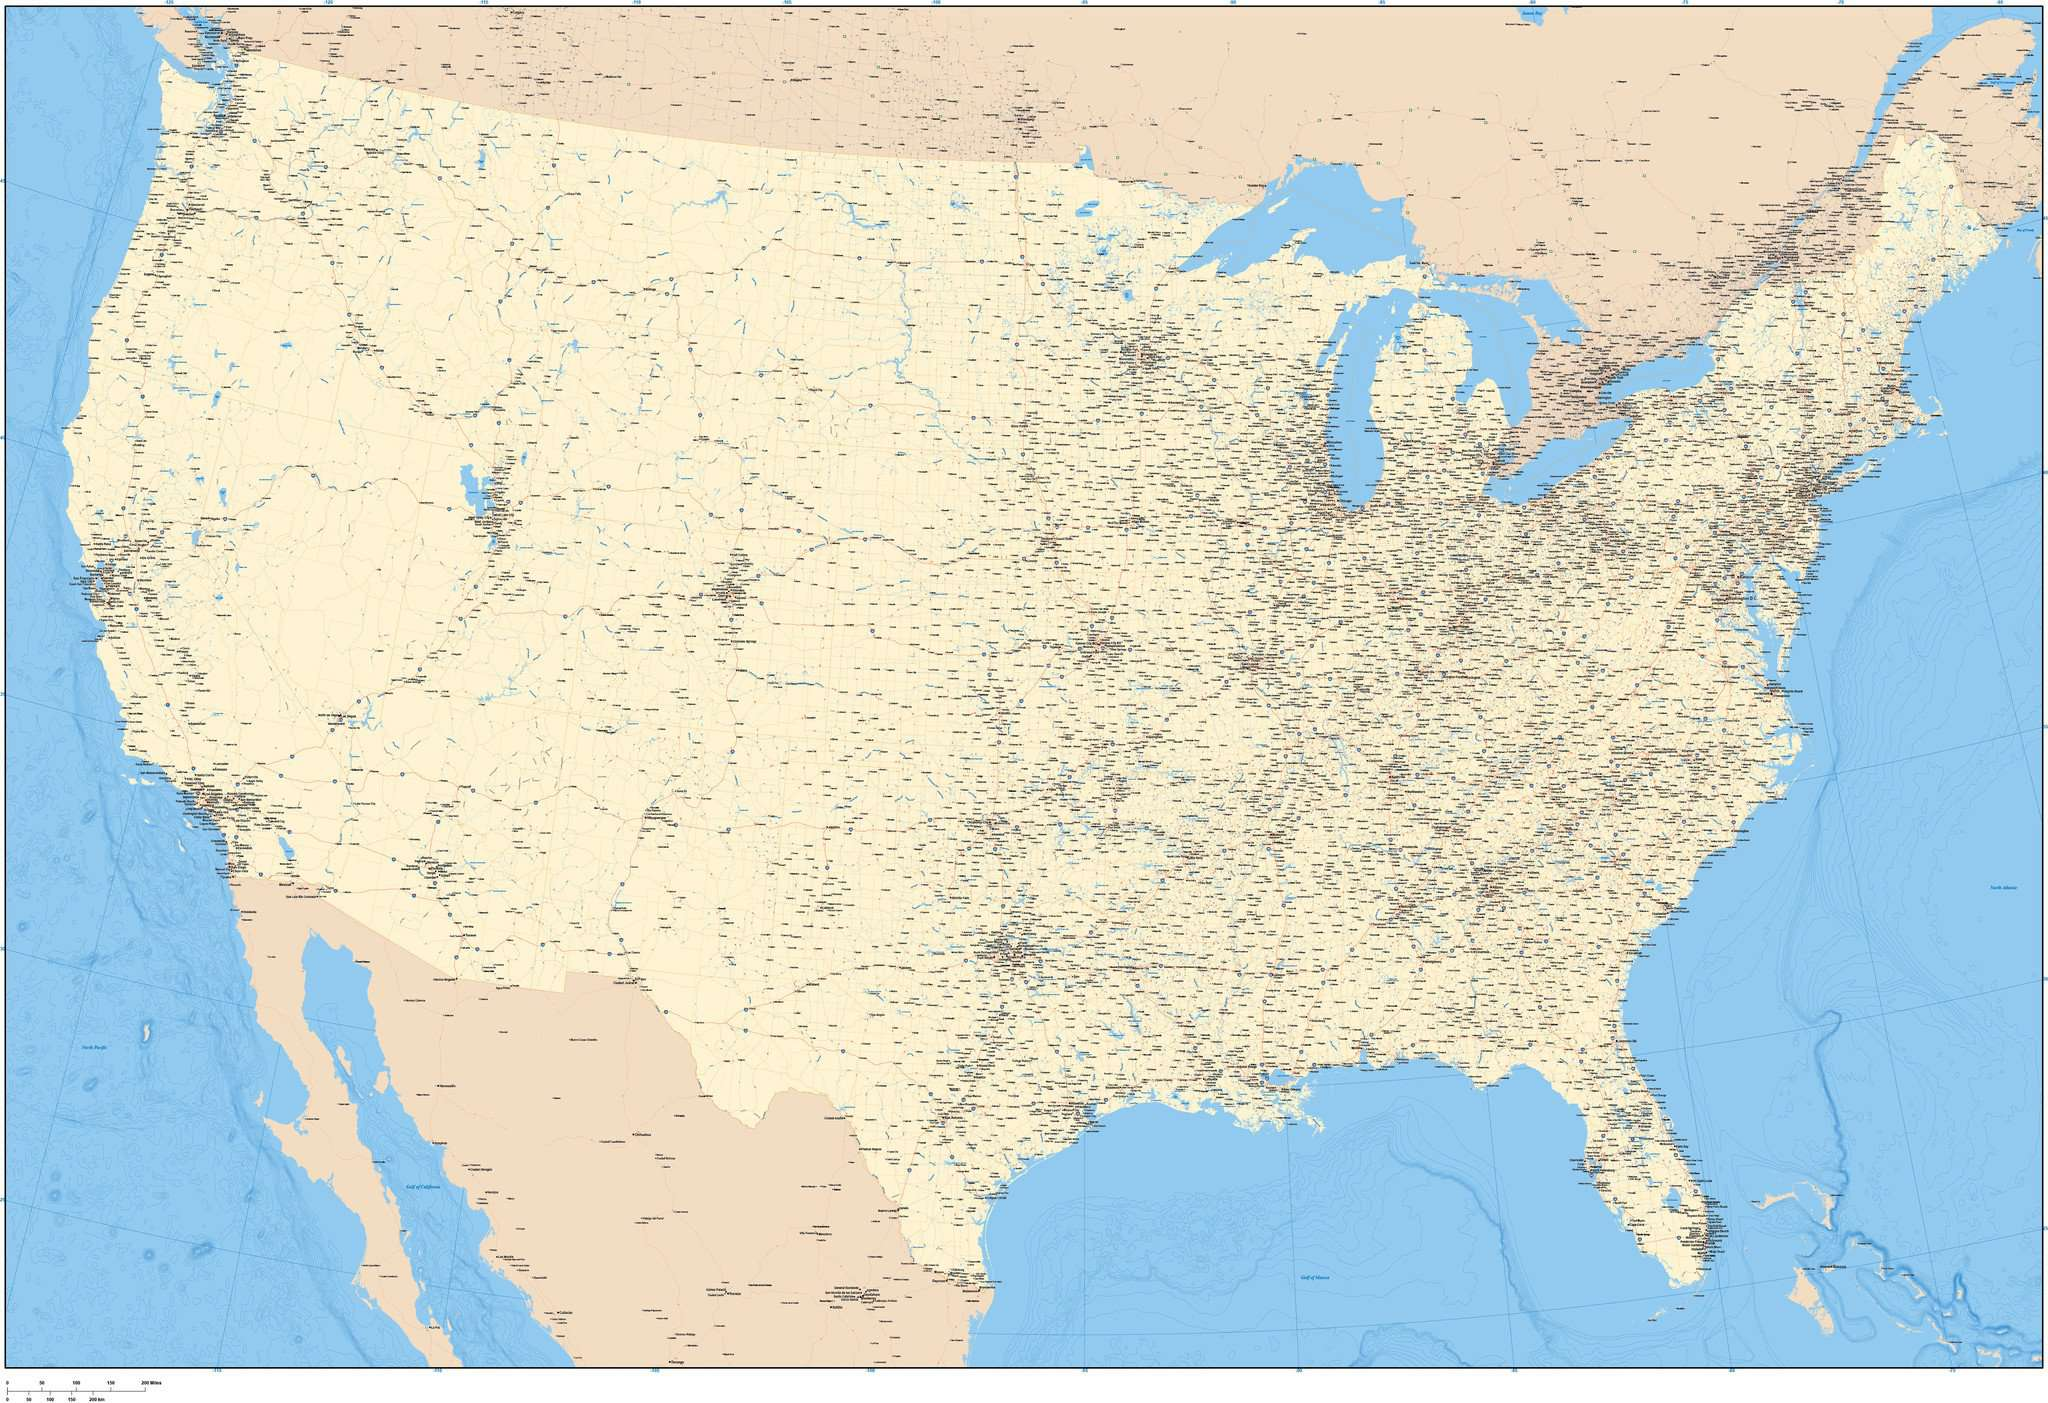 Wall Size USA Digital Map with Roads and Cities in Amazing Detail